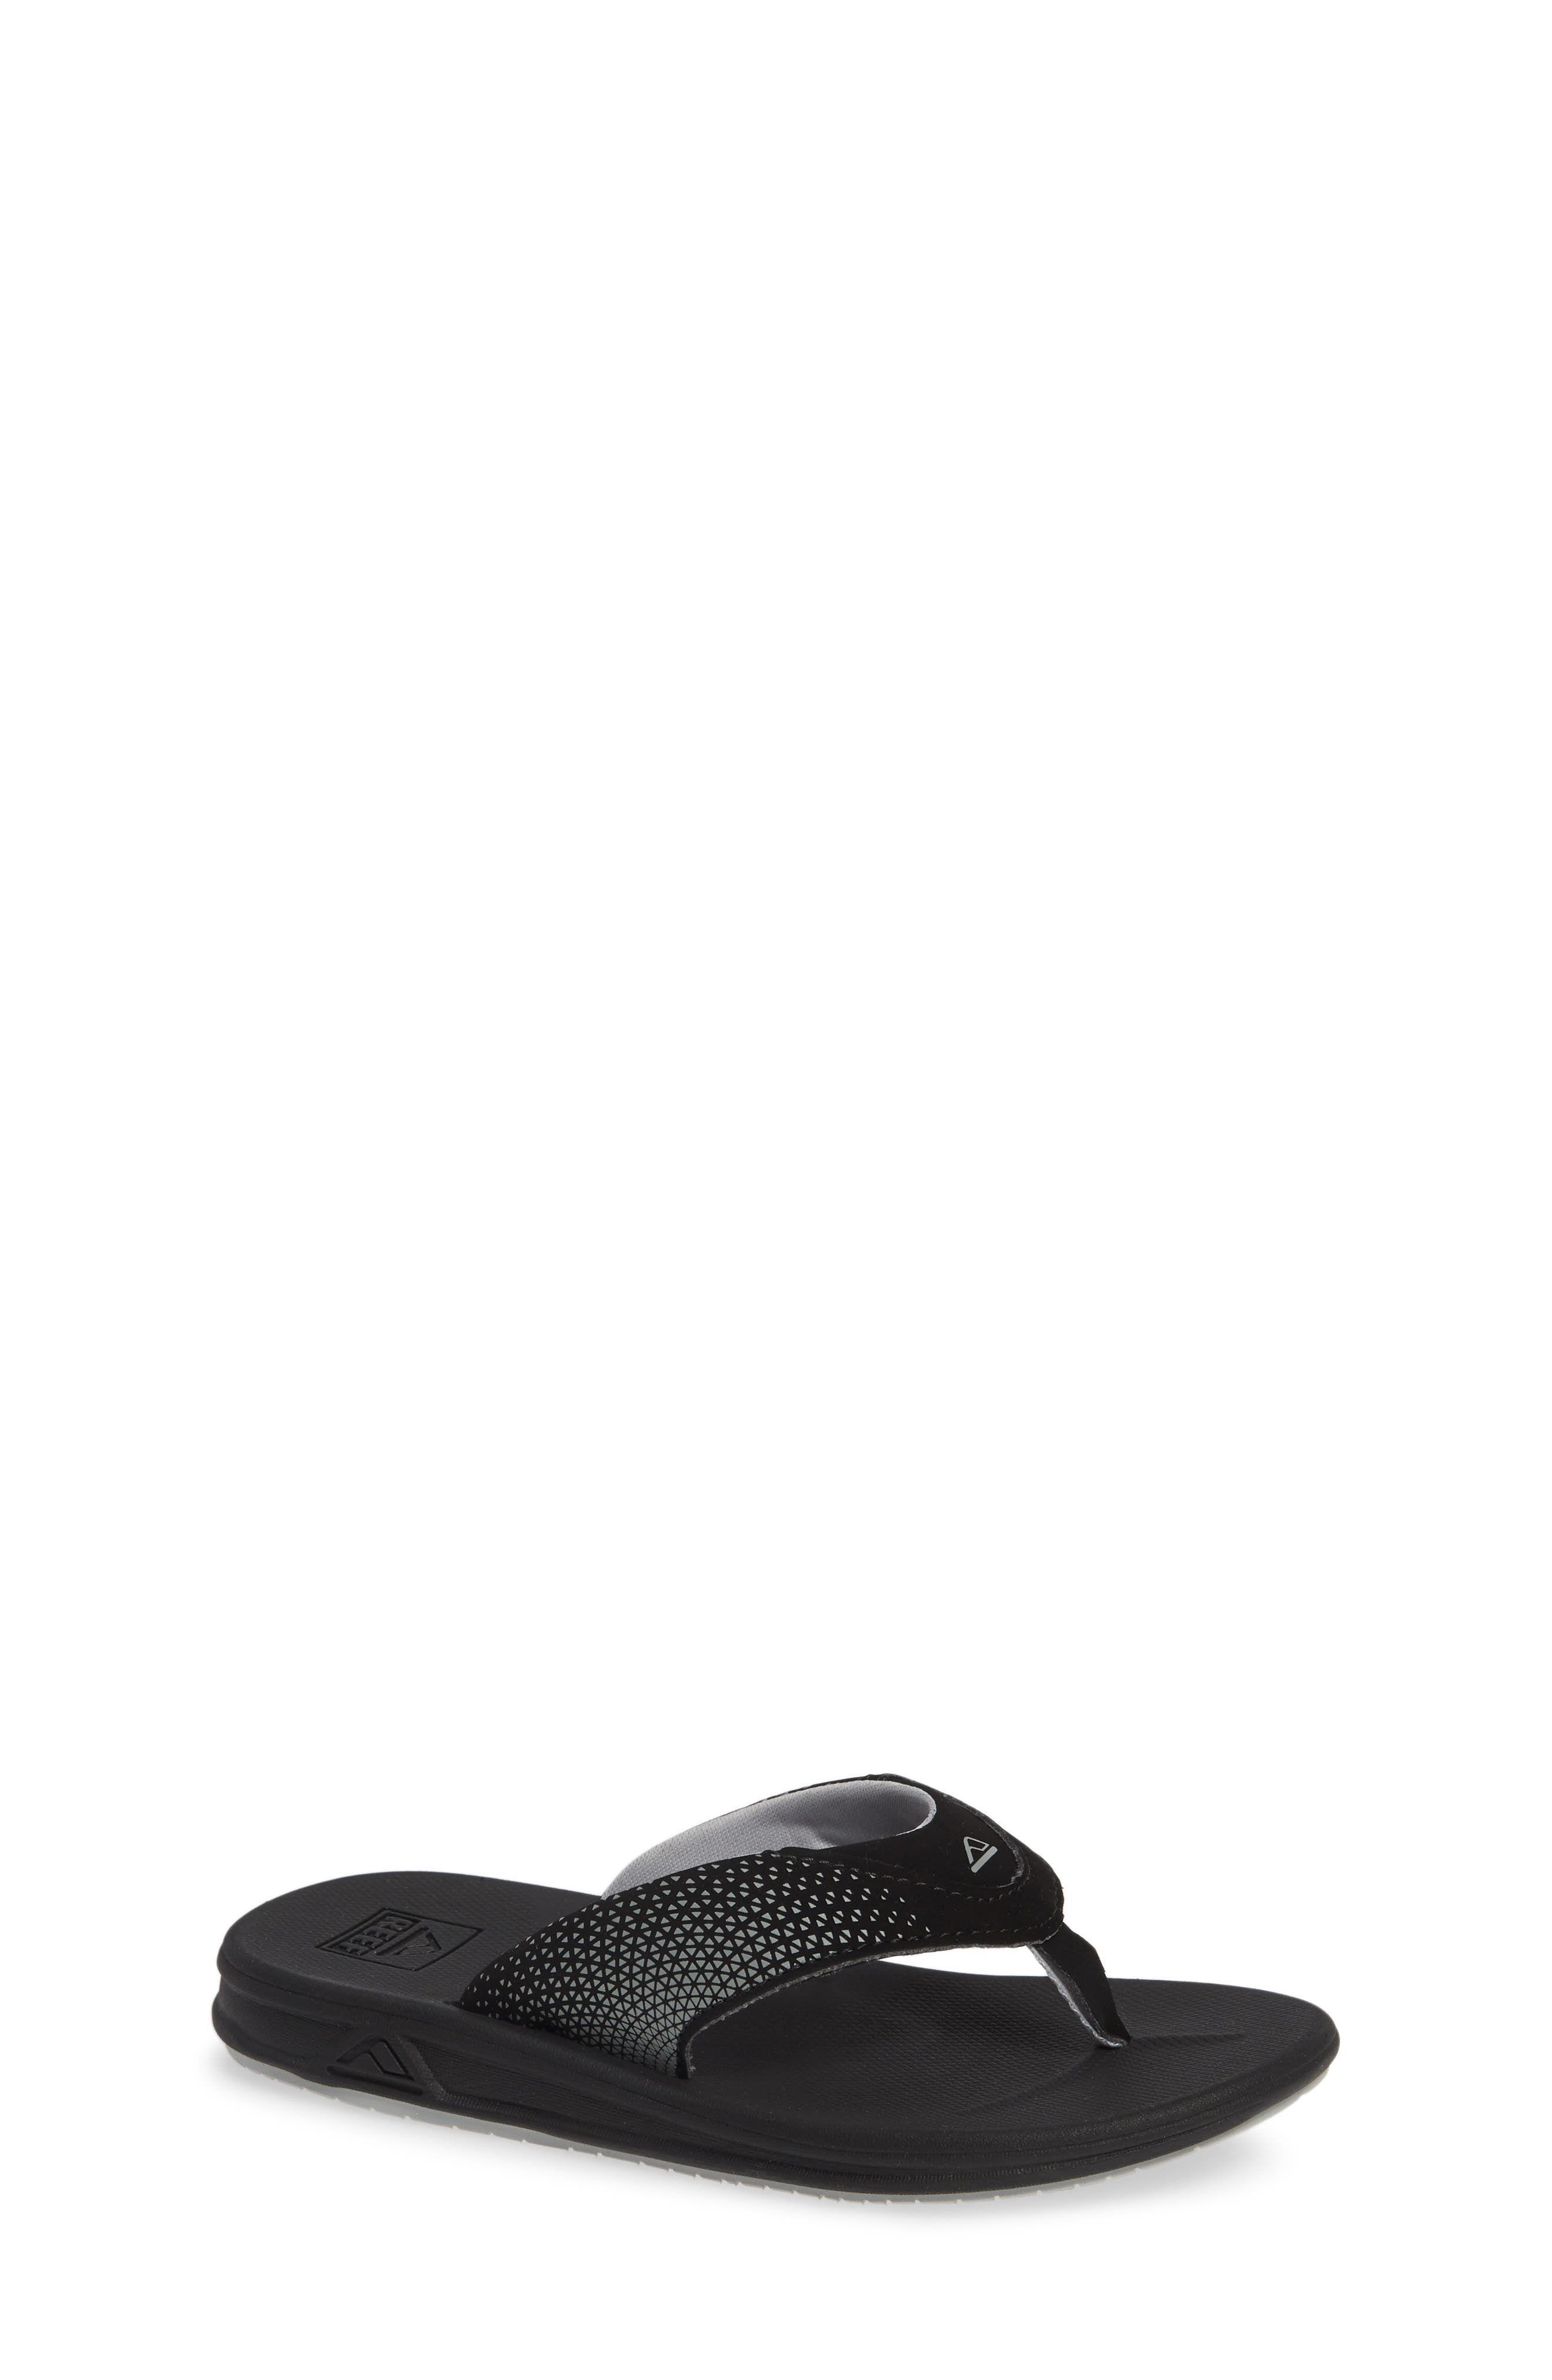 REEF Grom Rover Water Friendly Sandal, Main, color, BLACK